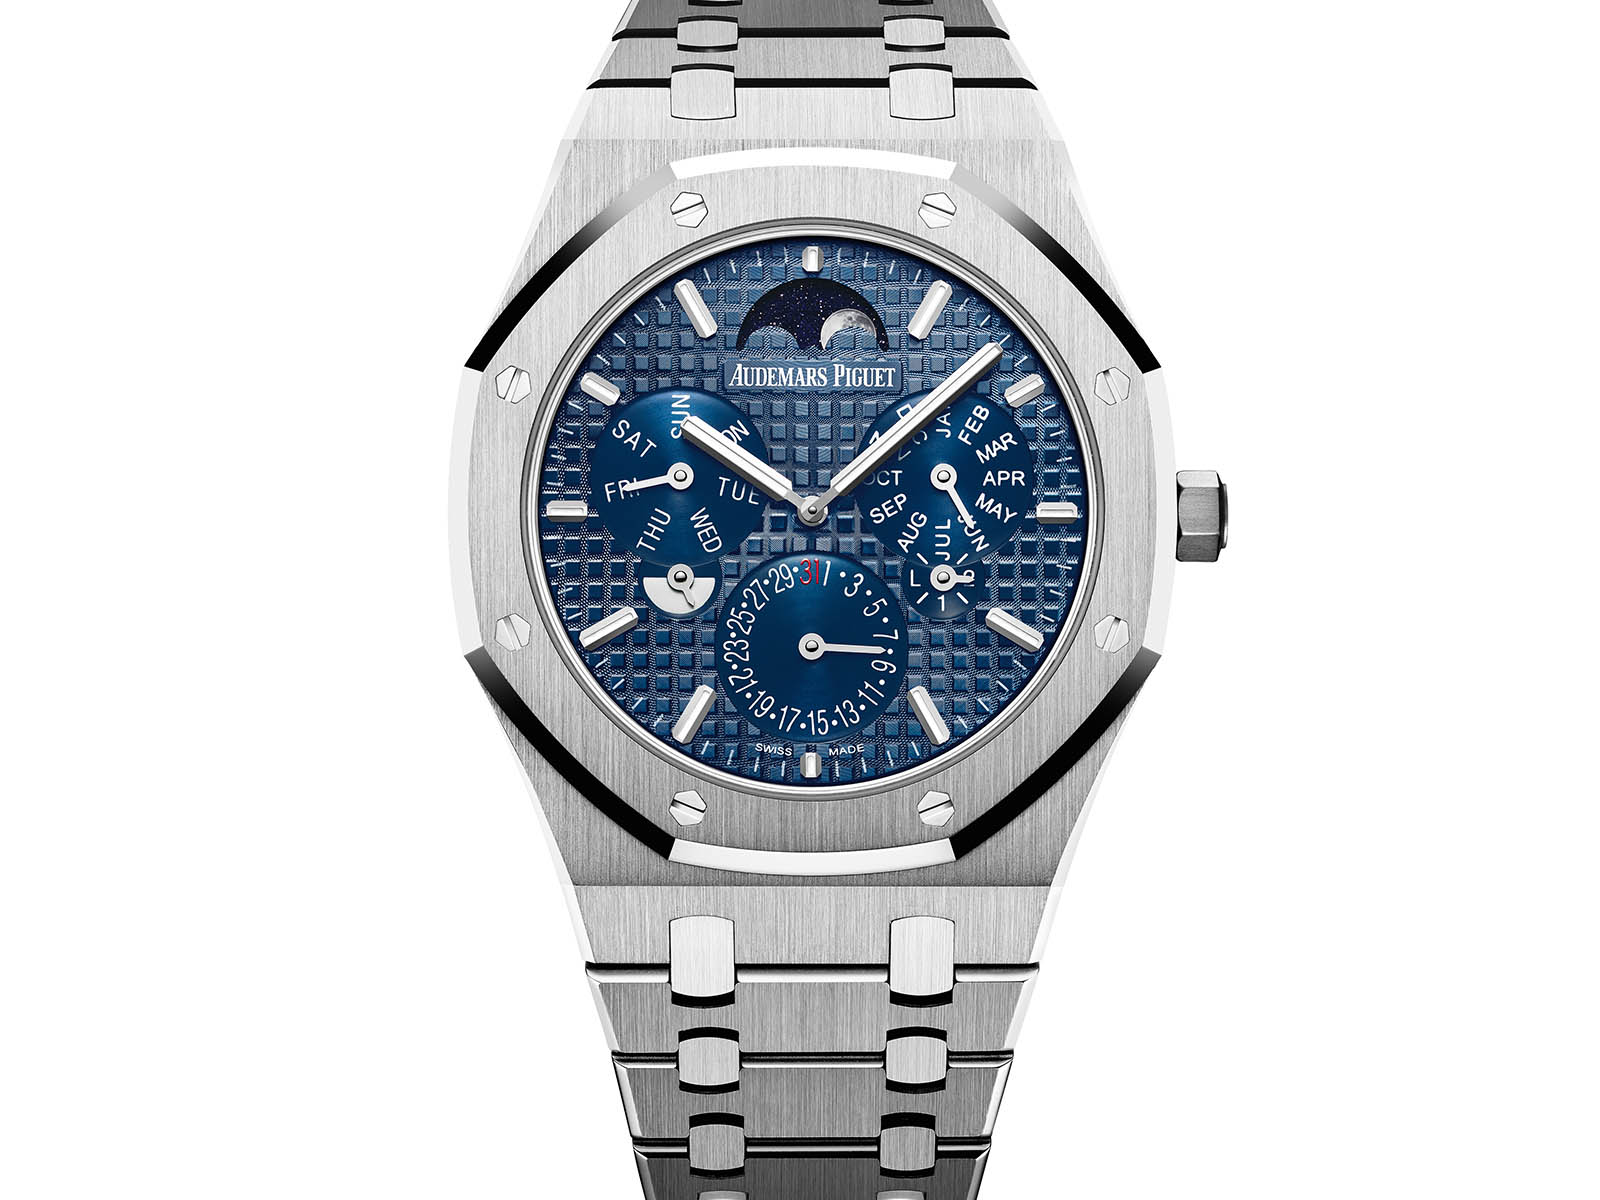 audemars-piguet-royal-oak-rd-2-perpetual-chronograph-ultra-thin-6.jpg